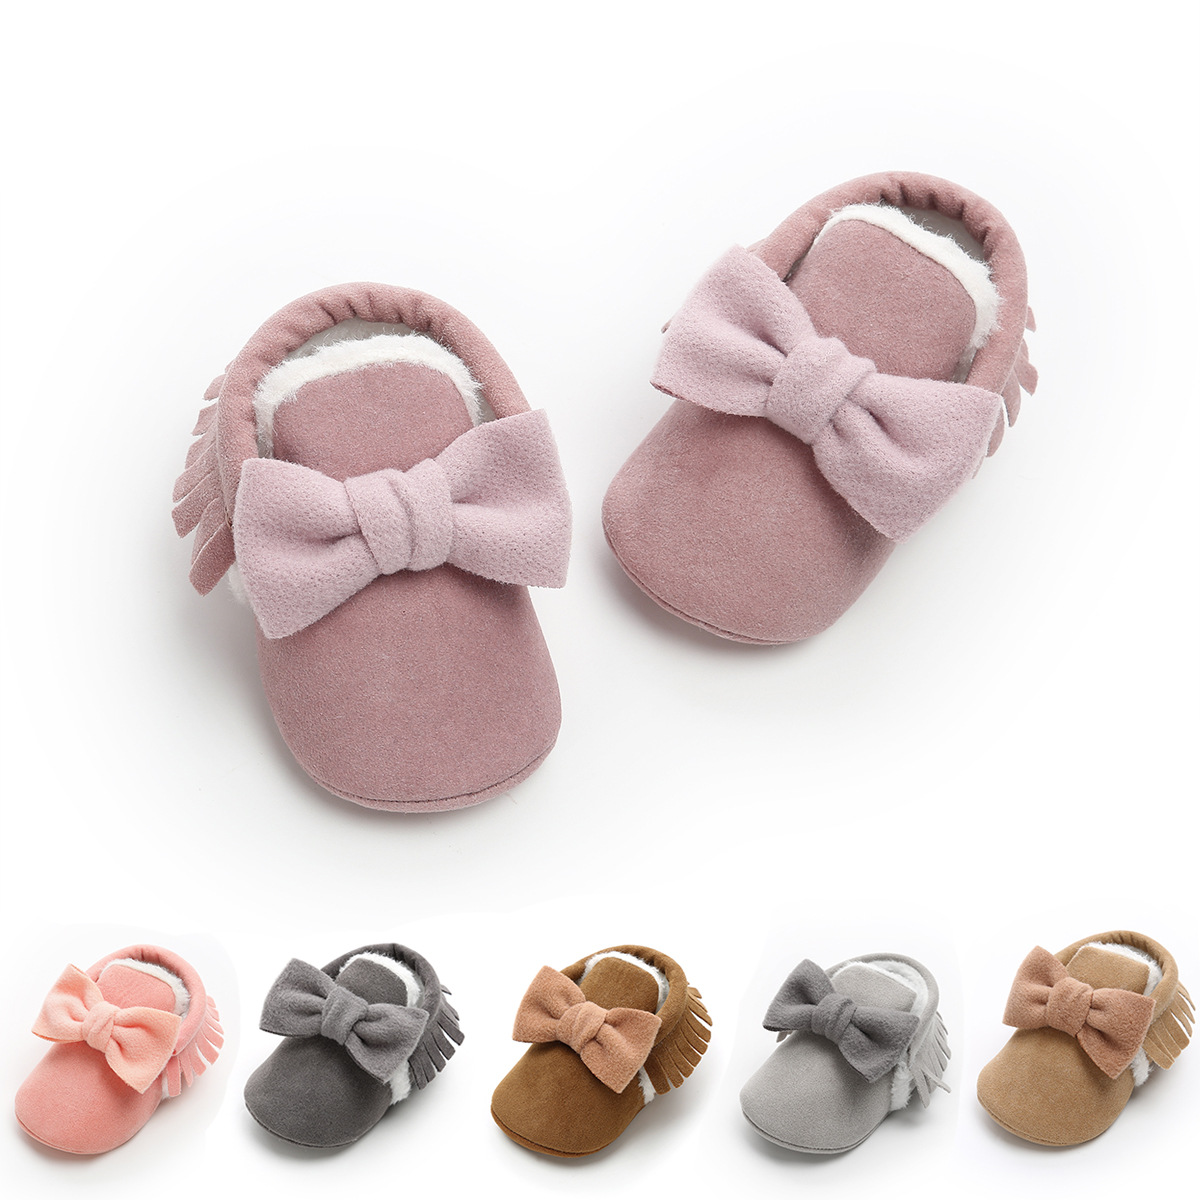 Winter New Baby Girls Shoes Warm Cotton Toddler Shoes  Baby Boots  Infant Fashion Boots Fashion Baby Moccasins